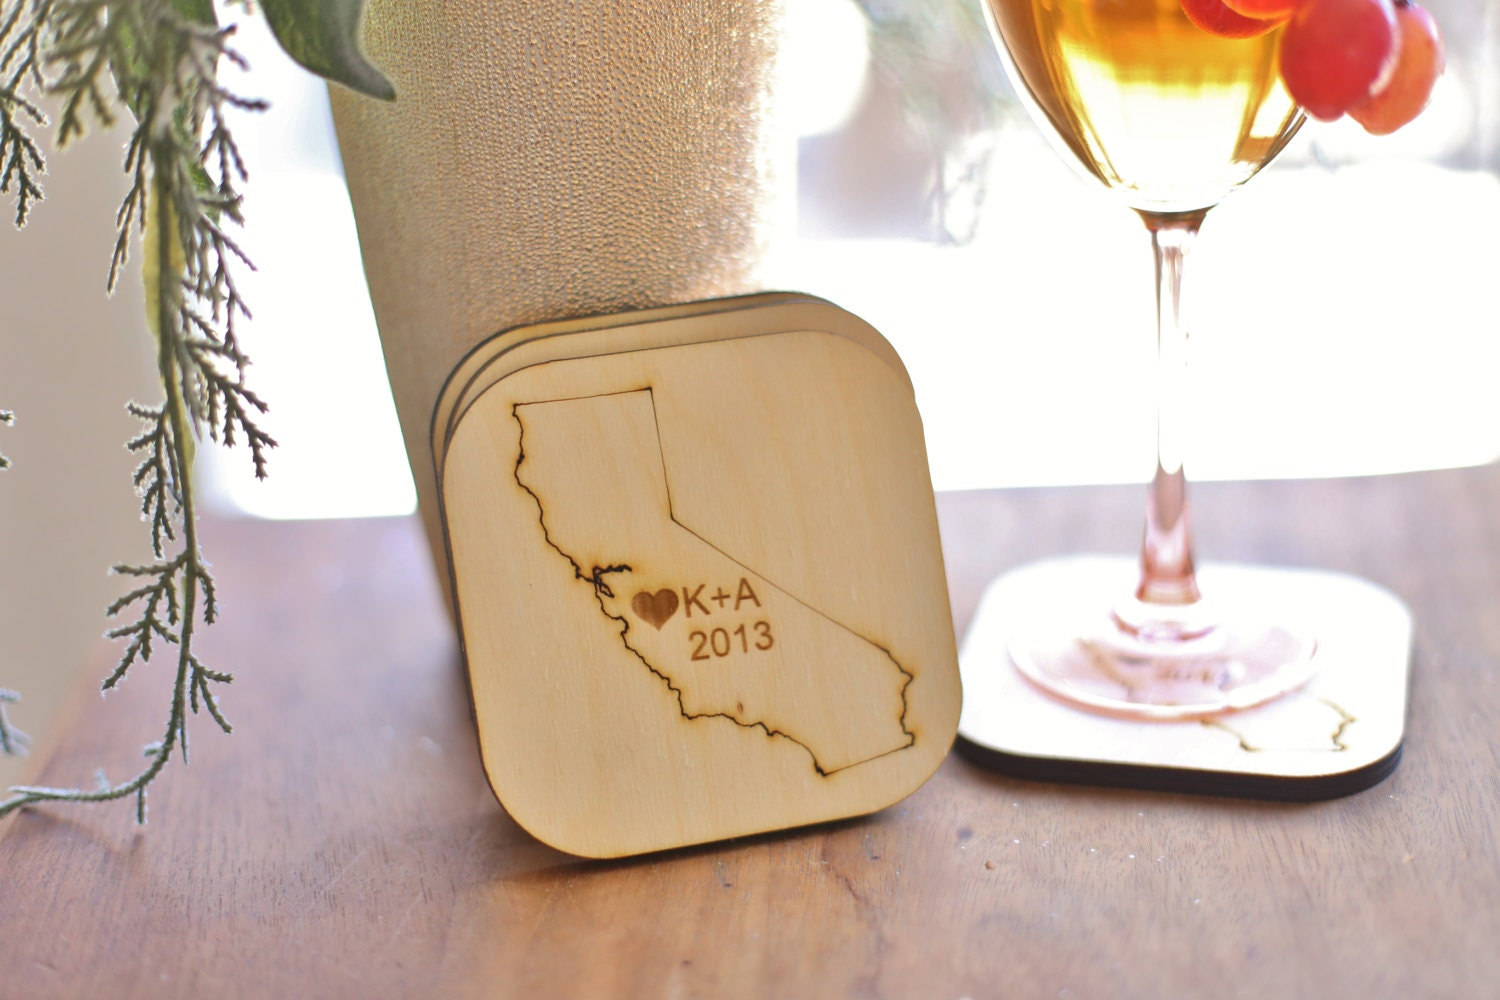 Personalized Coasters Wedding Gift: Personalized Coasters Wedding Favors Rustic Chic By